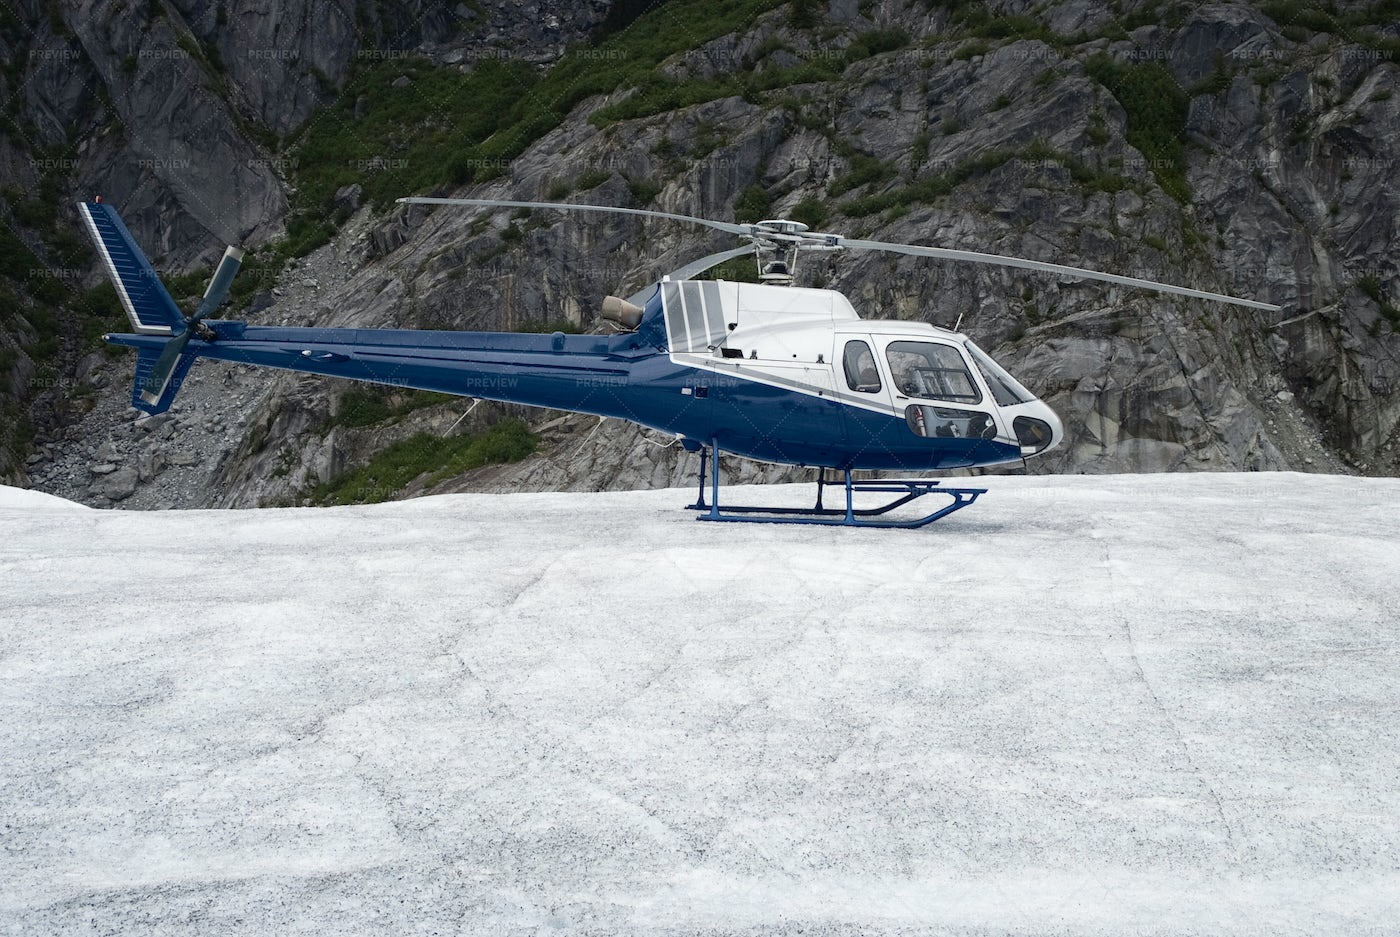 Helicopter Landed On Ice: Stock Photos